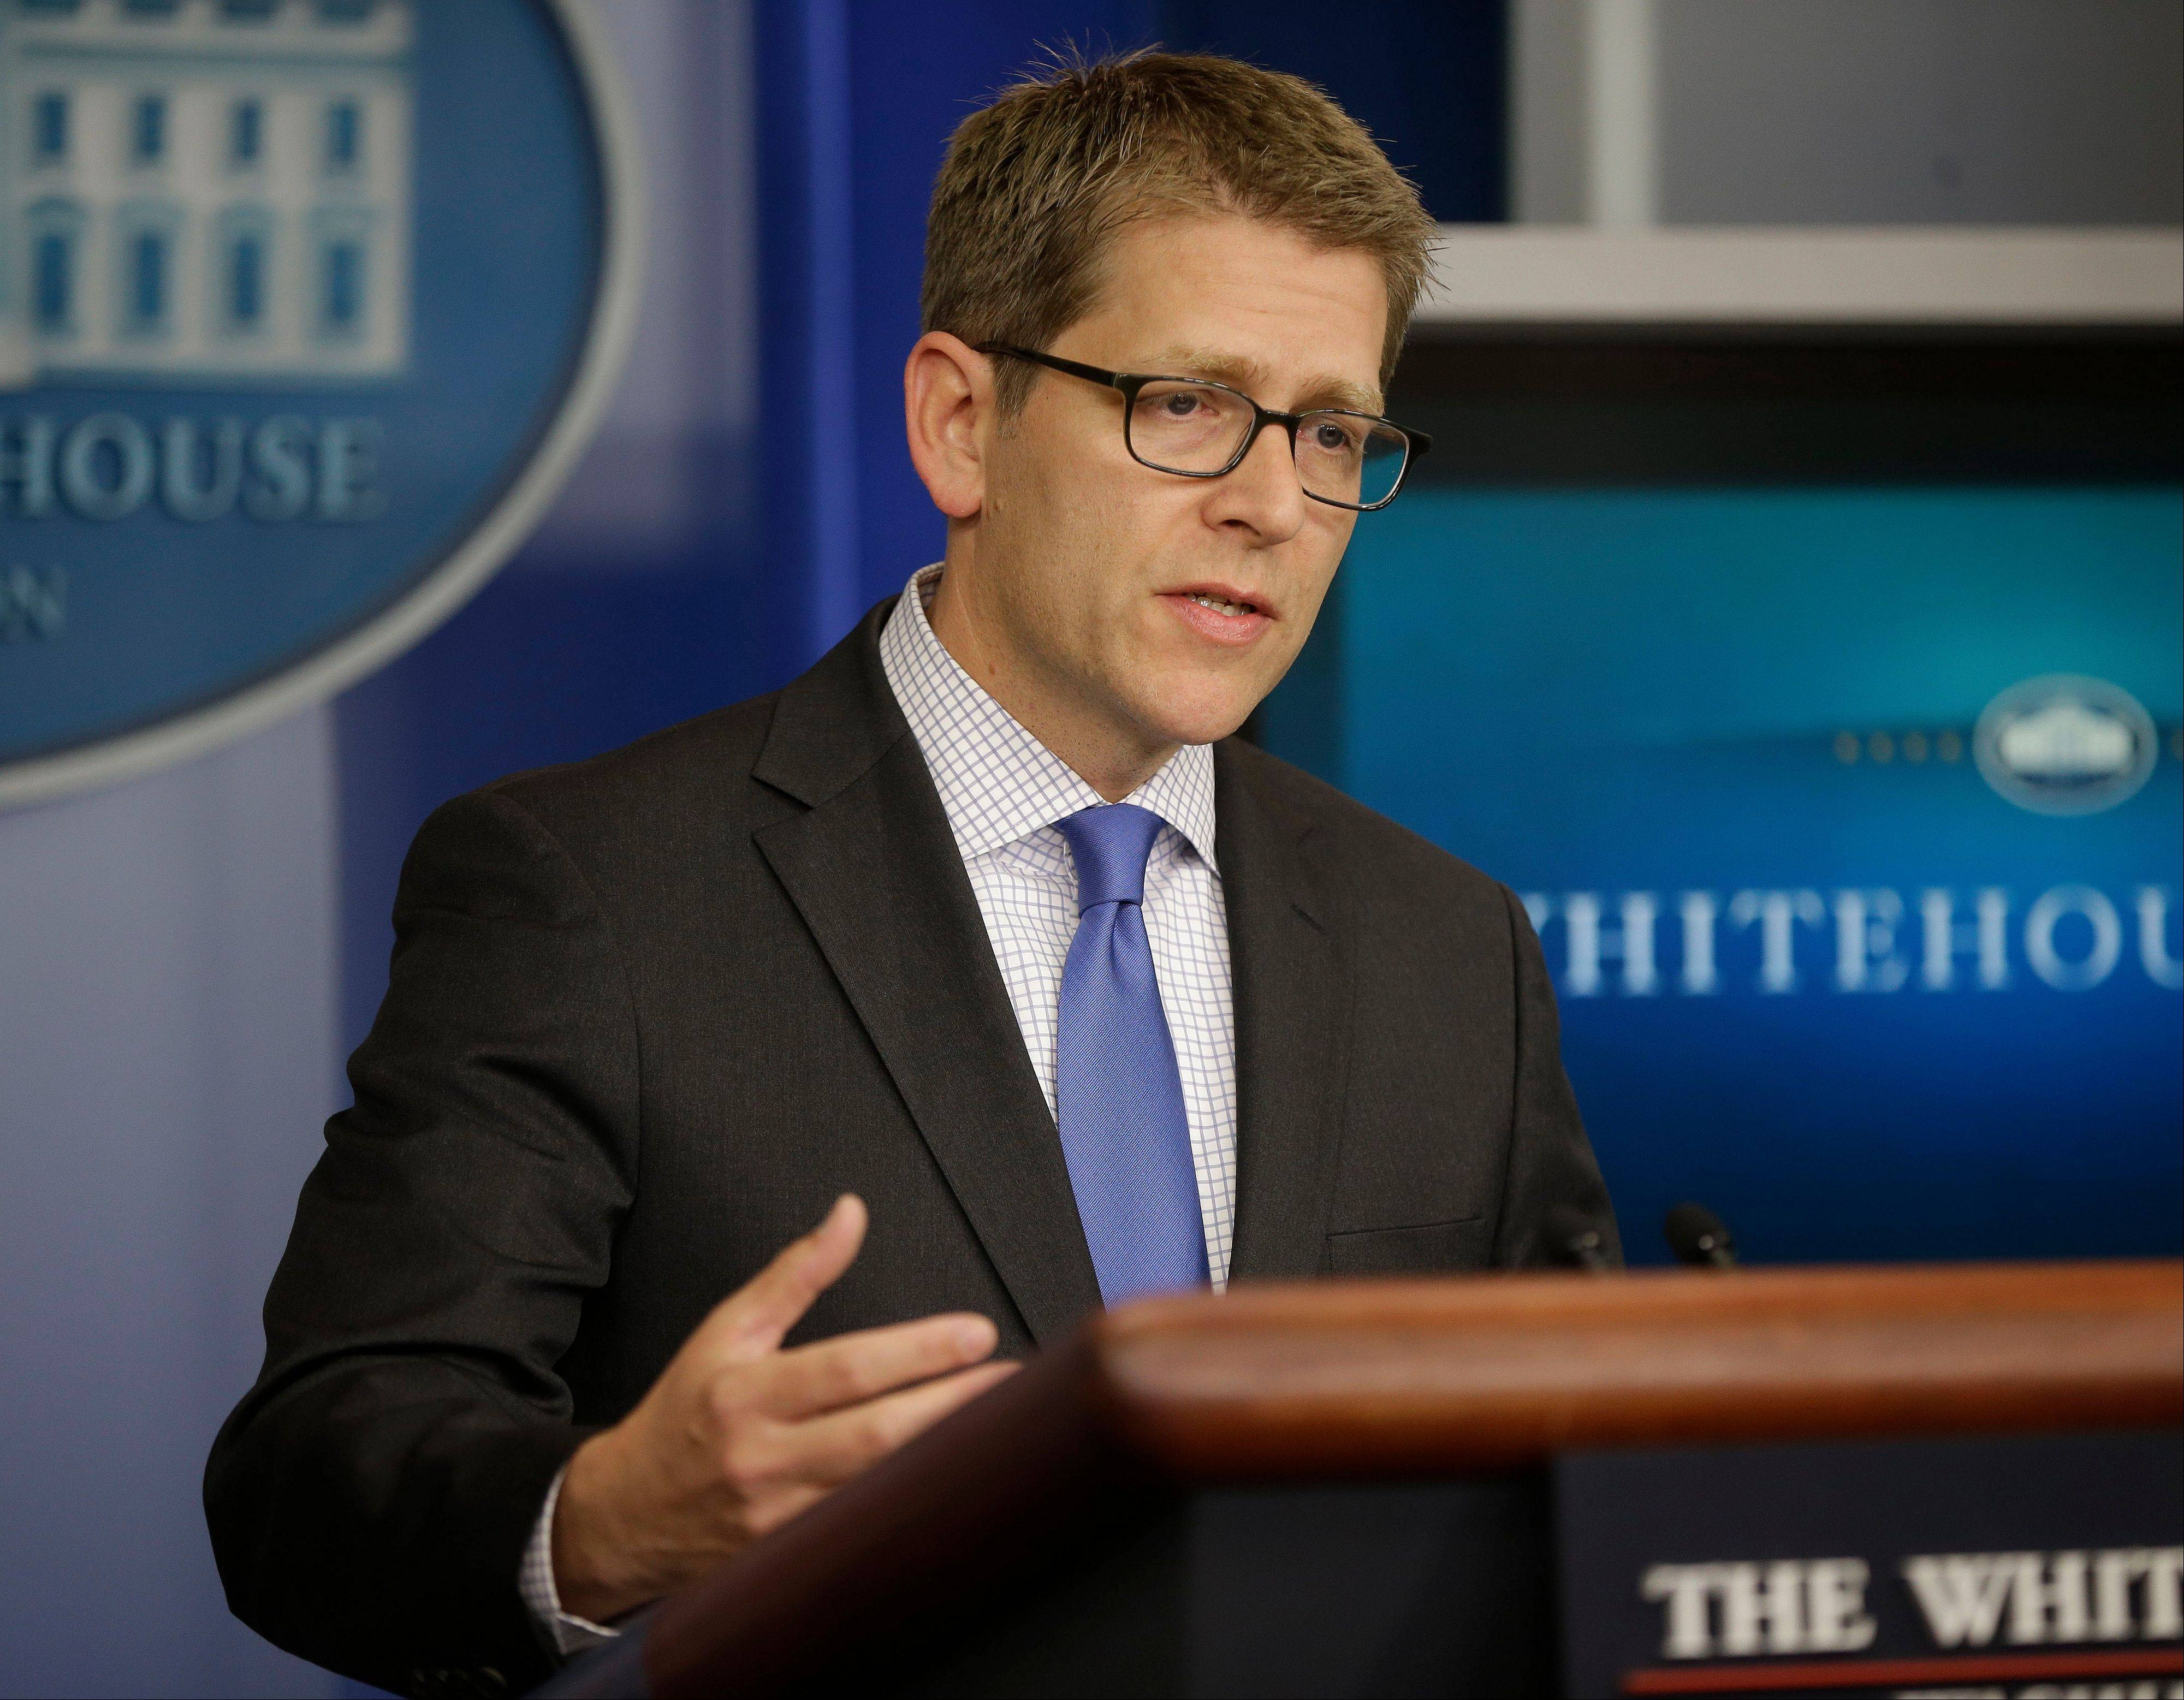 White House Press Secretary Jay Carney during his daily news briefing Friday at the White House in Washington.